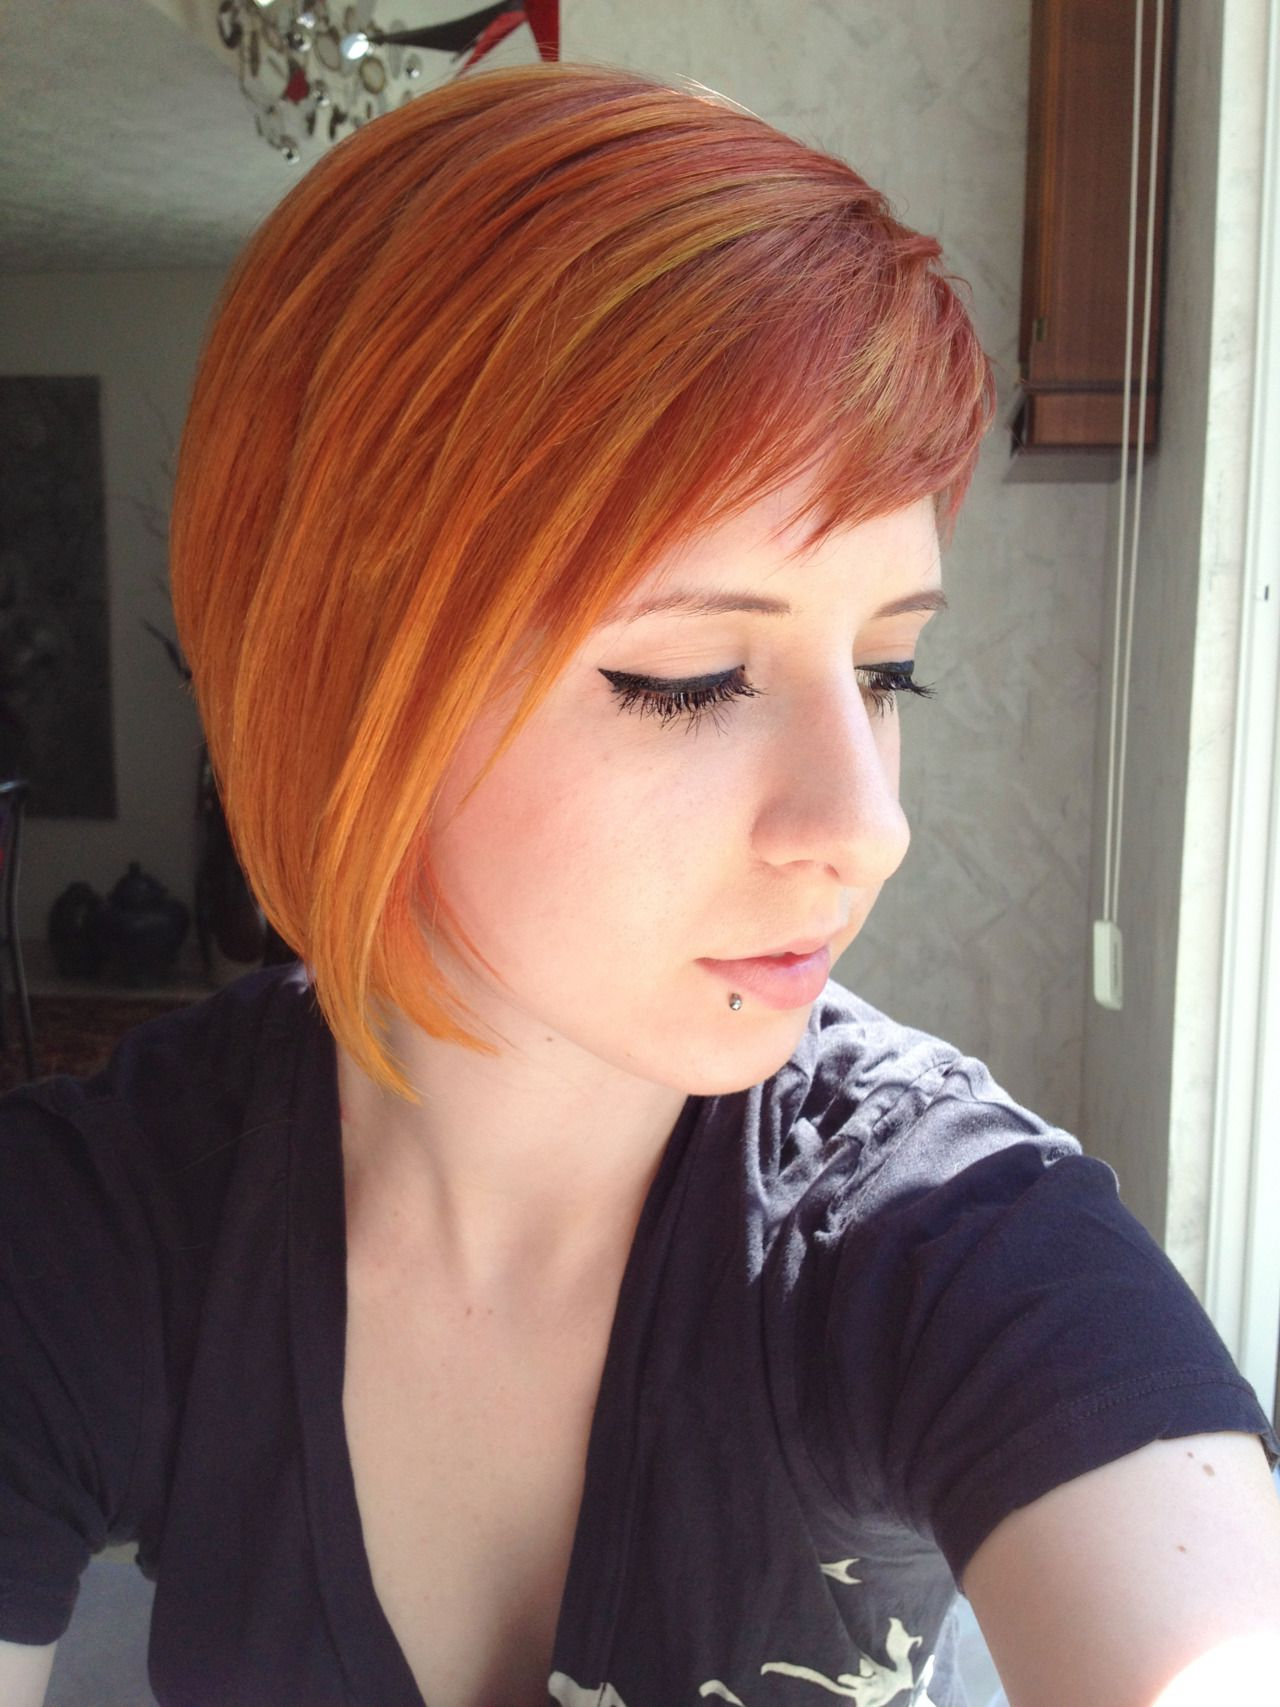 Red Short Hairstyle With Highlights   Red Short Hairstyles, Red Inside Red Short Hairstyles (View 6 of 25)